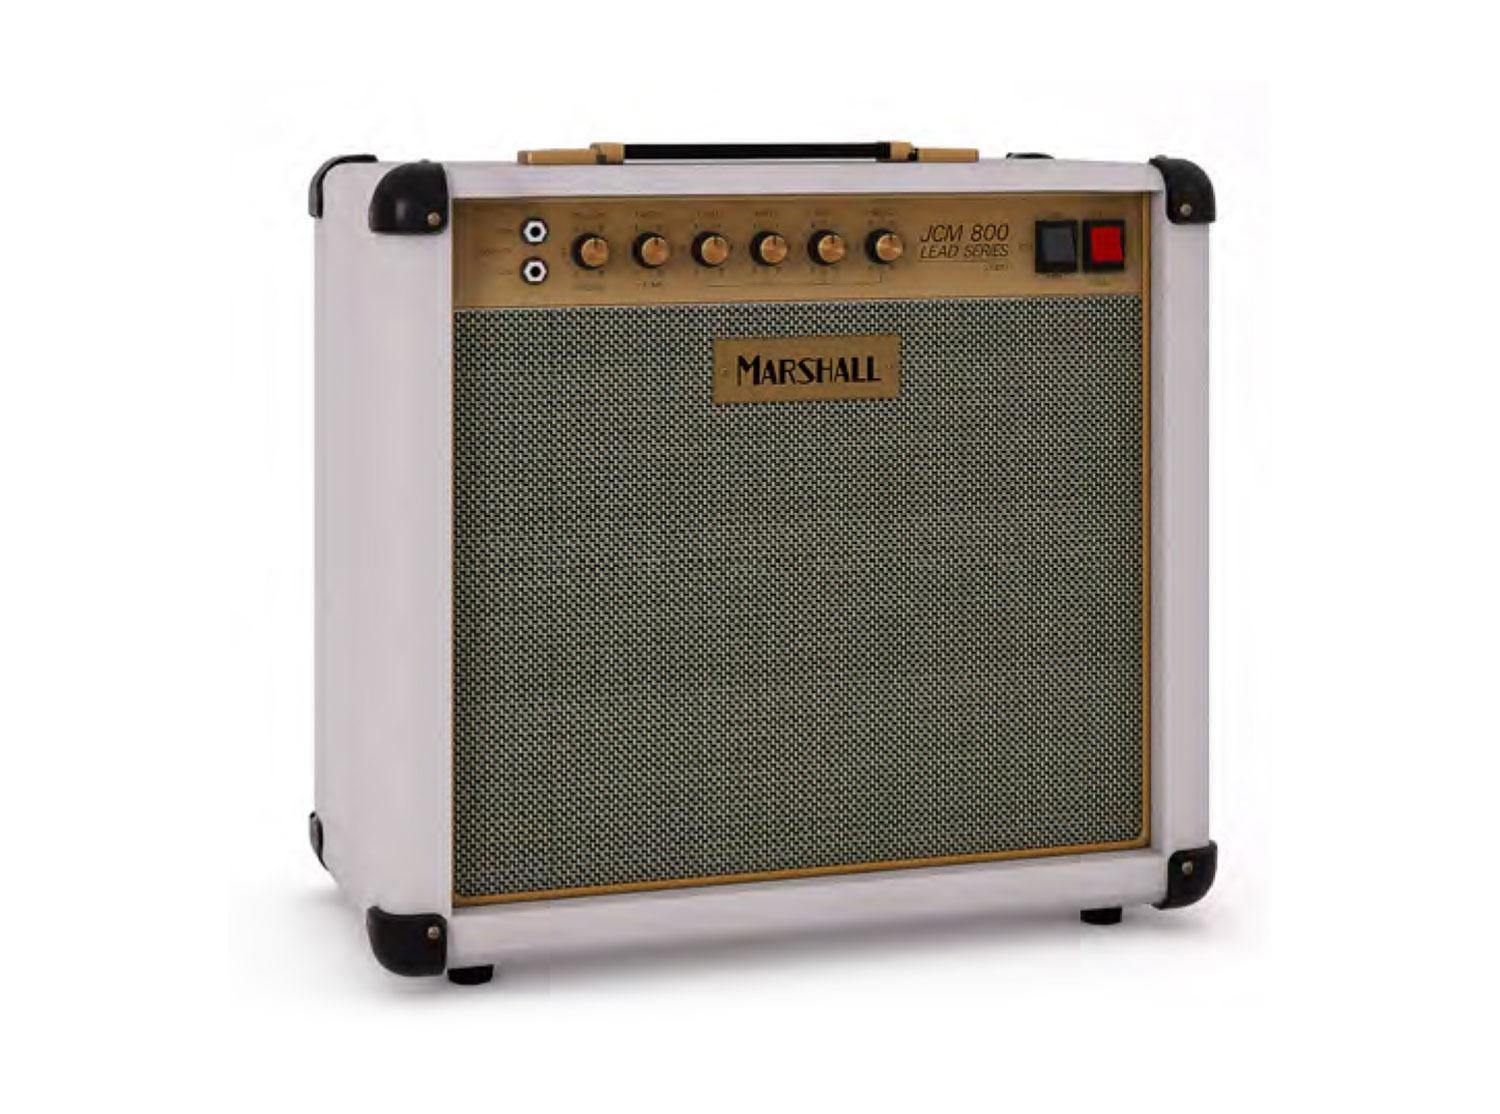 Marshall Limited Studio Classic SC20CWH White Elephant 20-Watt Guitar Combo Amplifier for sale